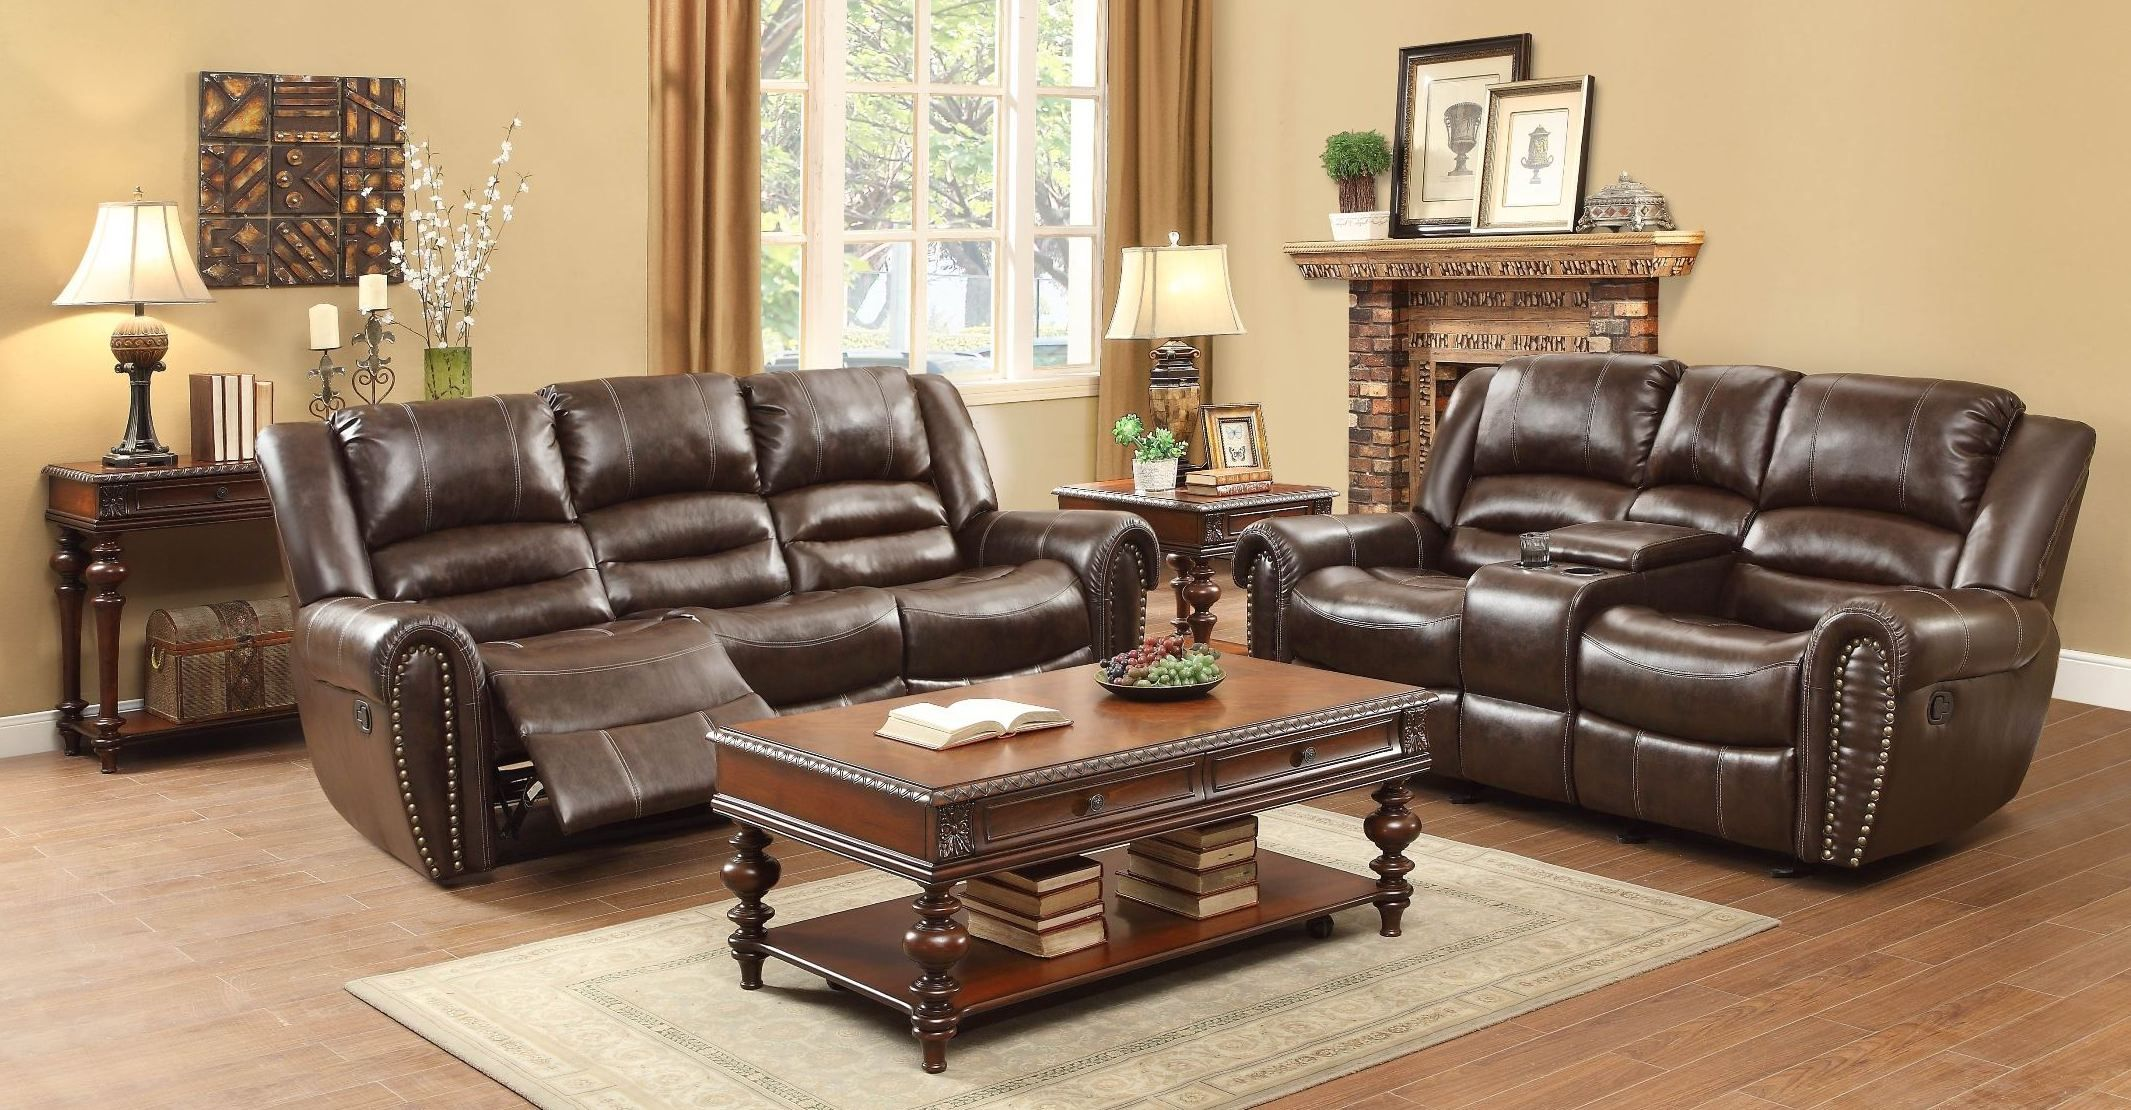 Surprising Vacherie Chocolate Double Reclining Sectional From Ashley Gmtry Best Dining Table And Chair Ideas Images Gmtryco